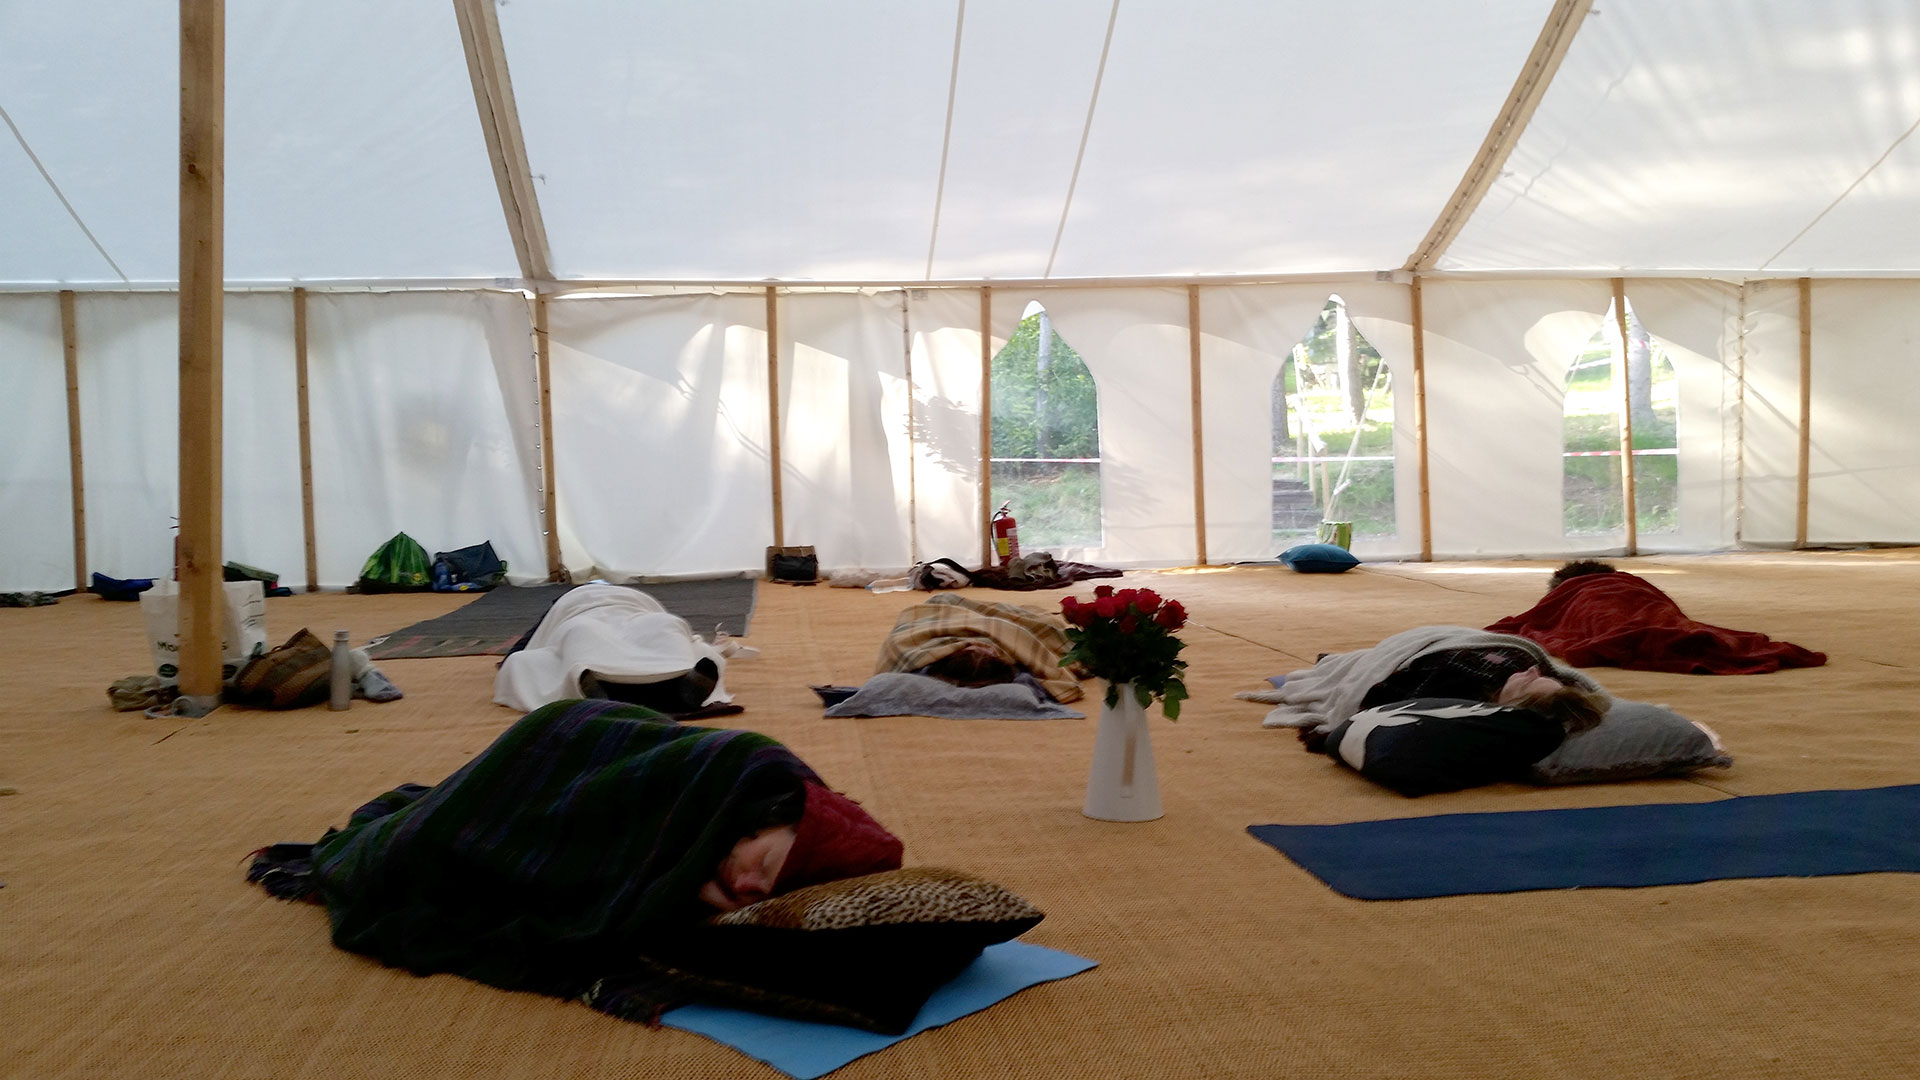 Relaxation in the marquee